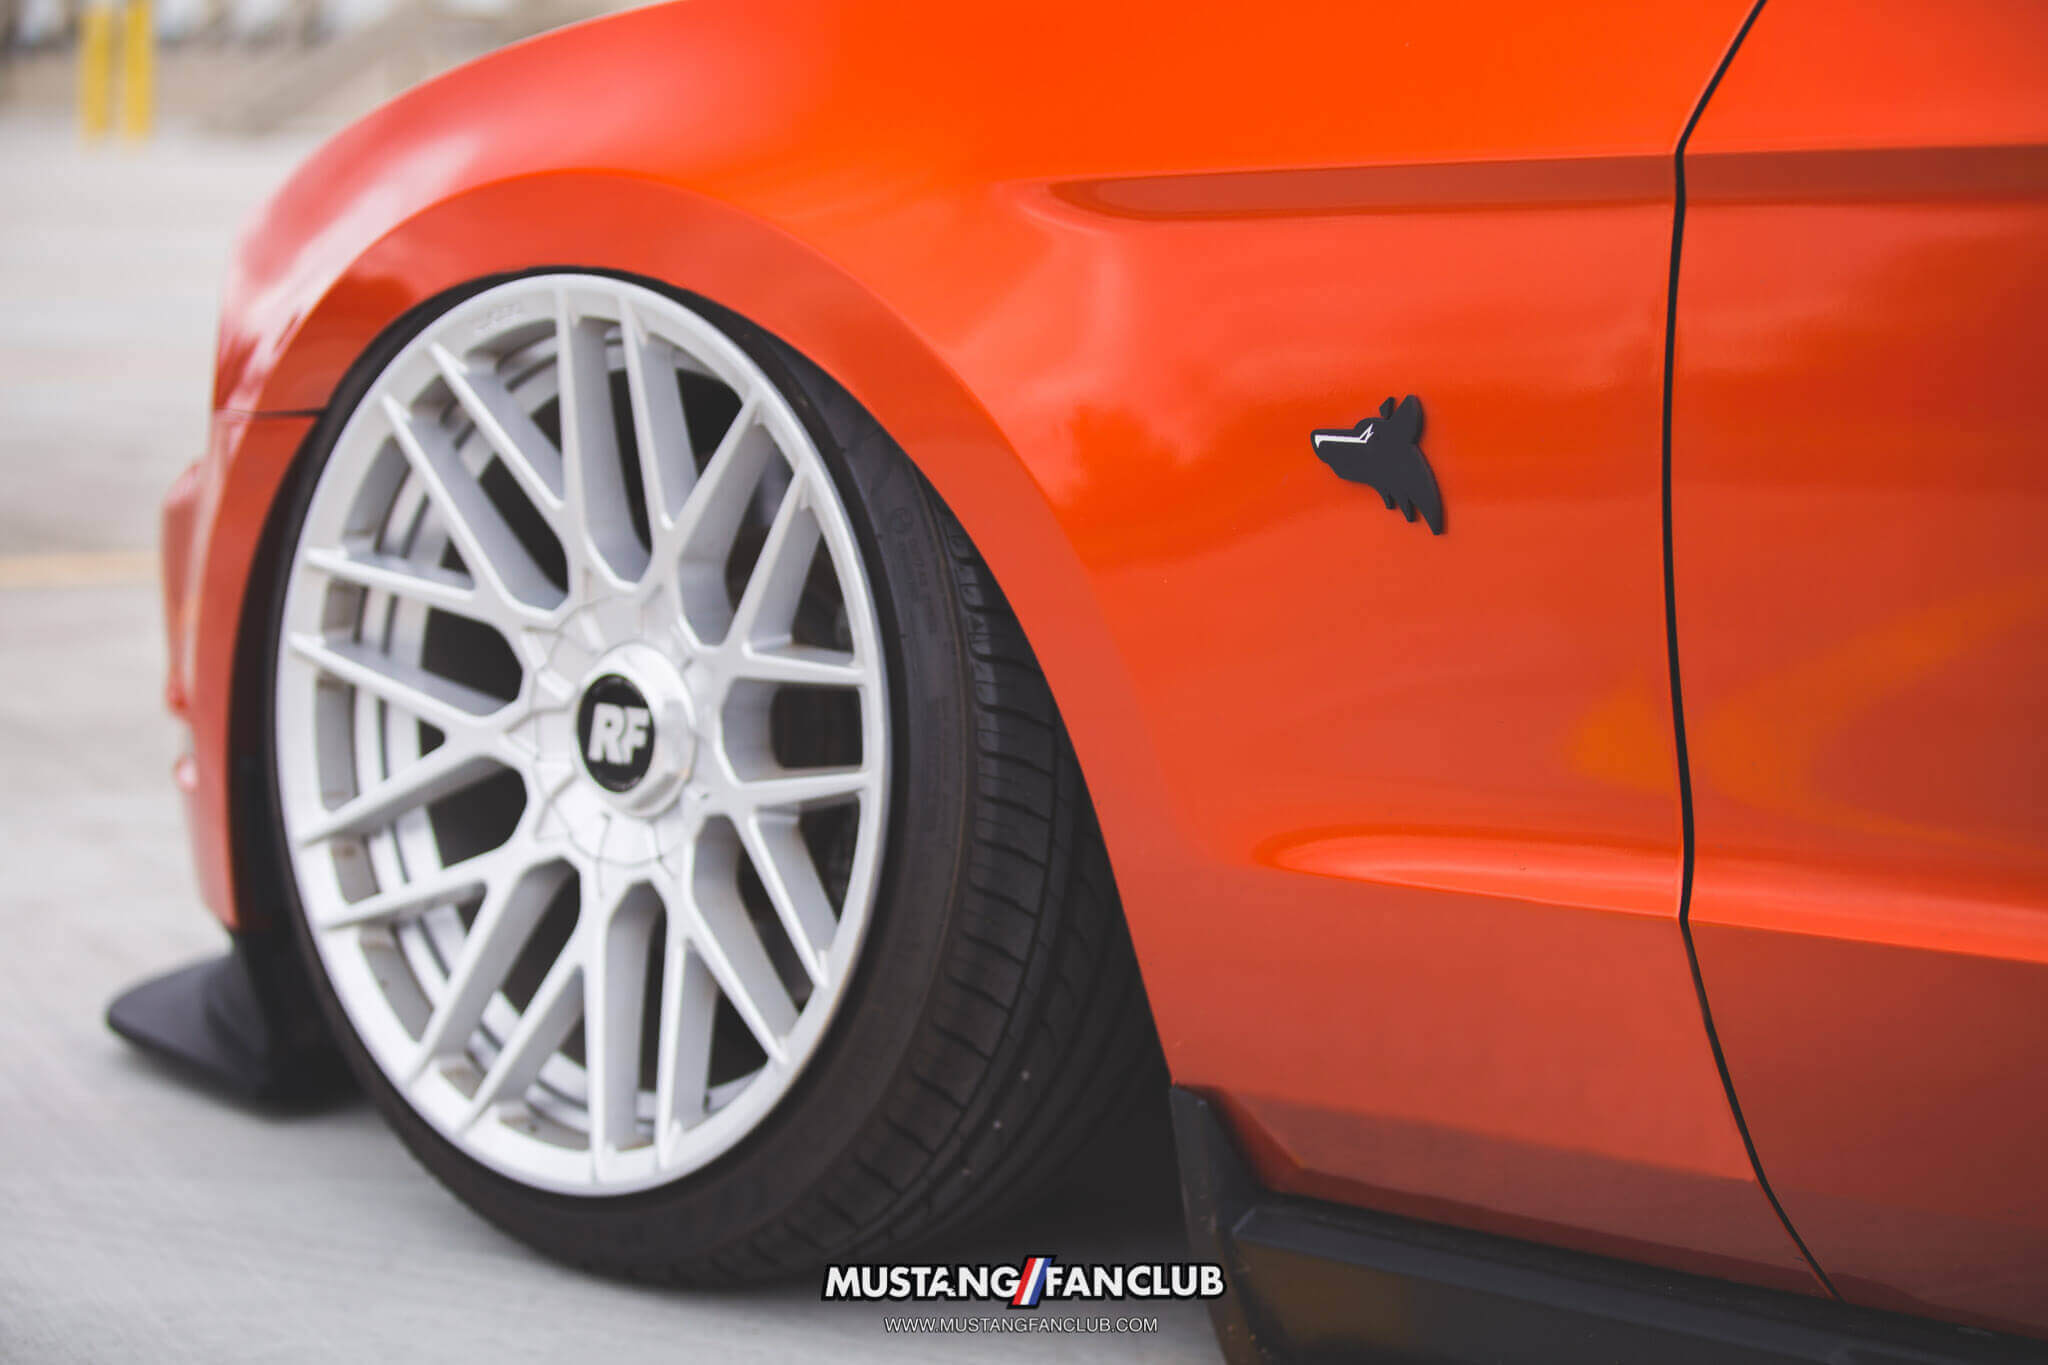 mustang fan club mustangfanclub @mustangfanclub 2011 11 mustang coyote 5.0L 5.0 wrapped bagged air suspension air lift performance rotiform wheels dillon shand RSE anything coyote emblem badge upr products S197 3m 1080 fiery orange